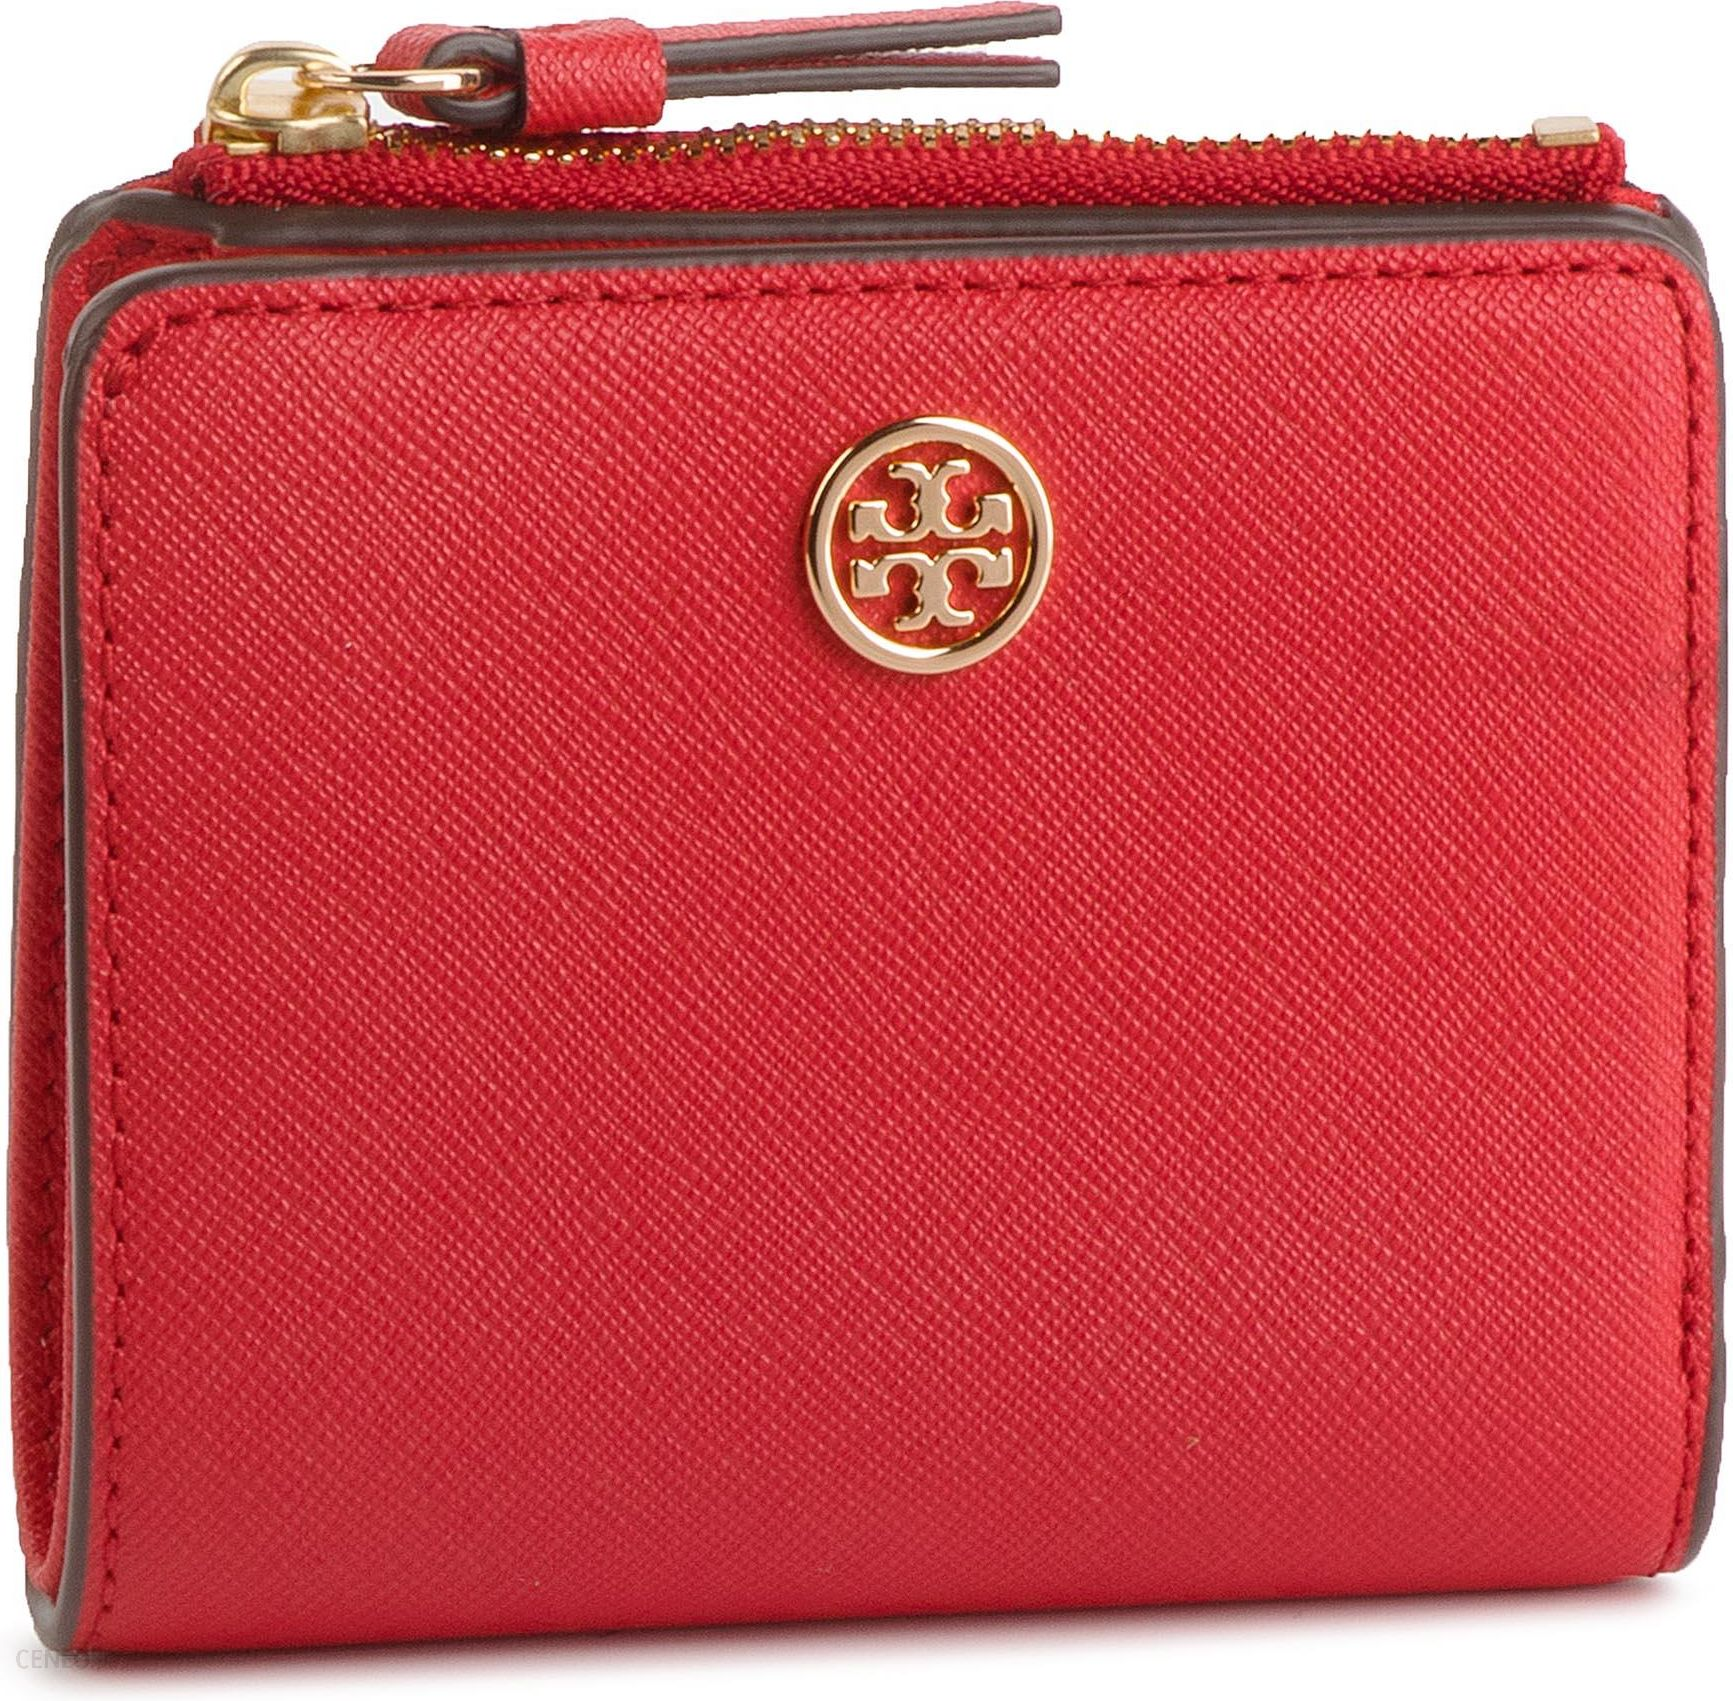 7110be9380738 Mały Portfel Damski TORY BURCH - Robbinson Mini Wallet 54449 Brilliant Red  612 - zdjęcie 1